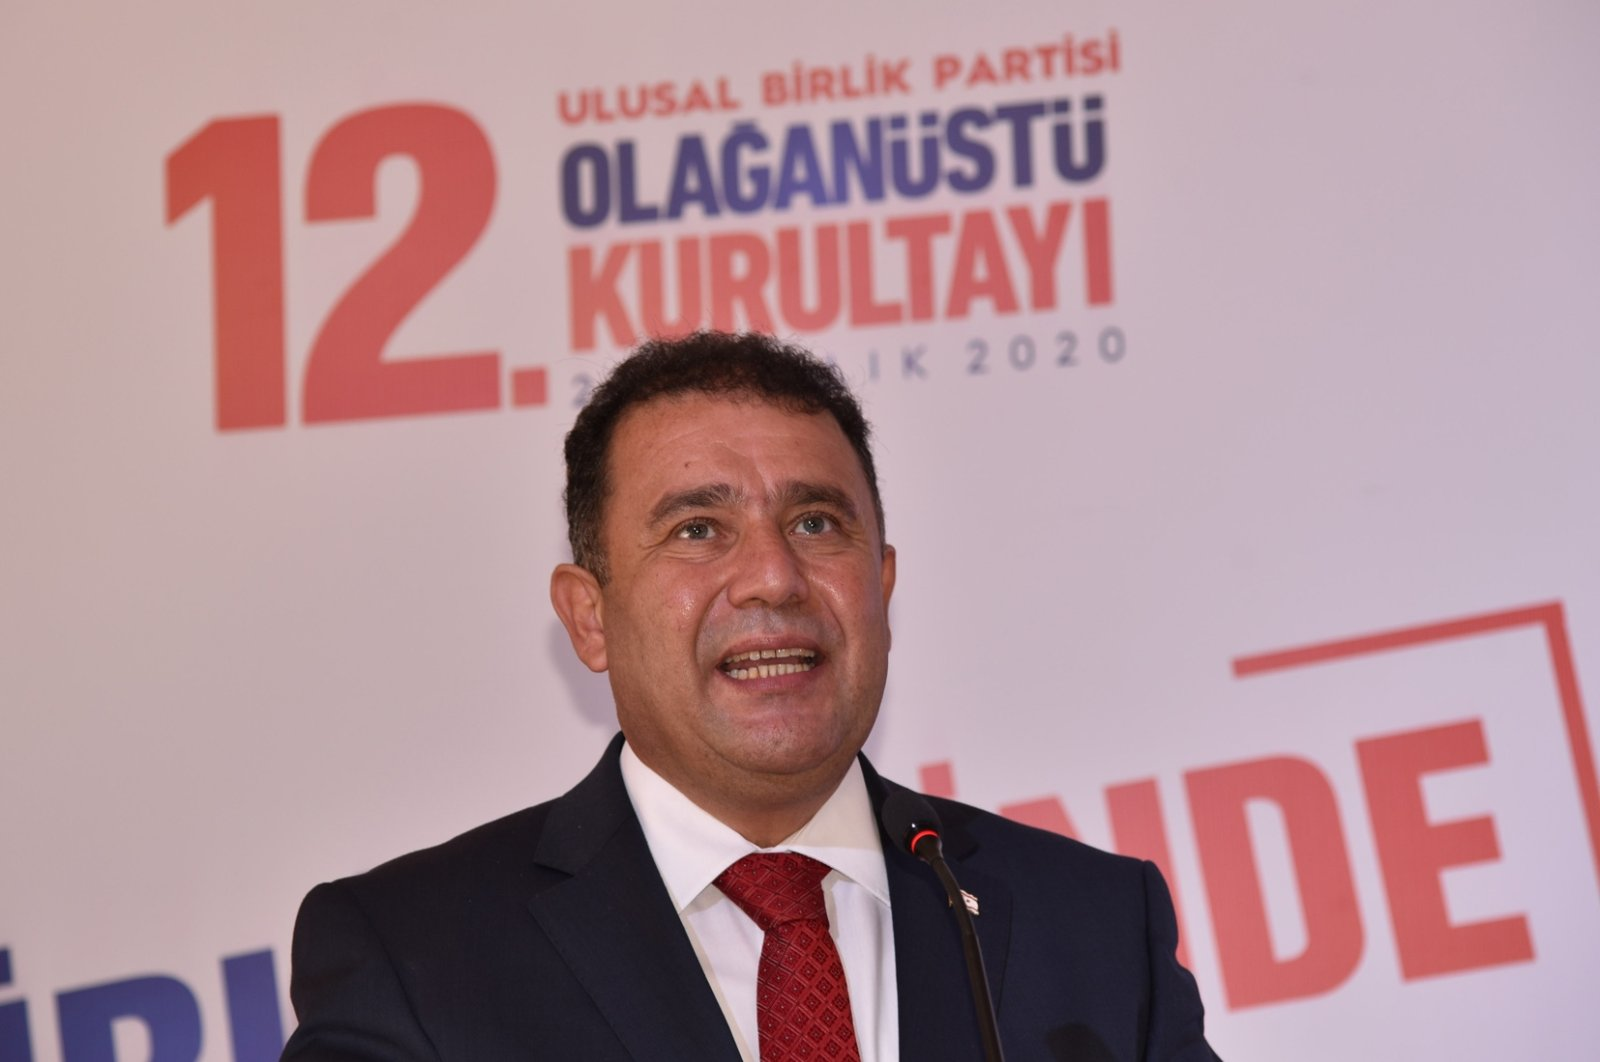 Ersan Saner, prime minister of the Turkish Republic of Northern Cyprus (TRNC), became head of the National Unity Party (UBP) on Dec. 20, 2020. (AA Photo)